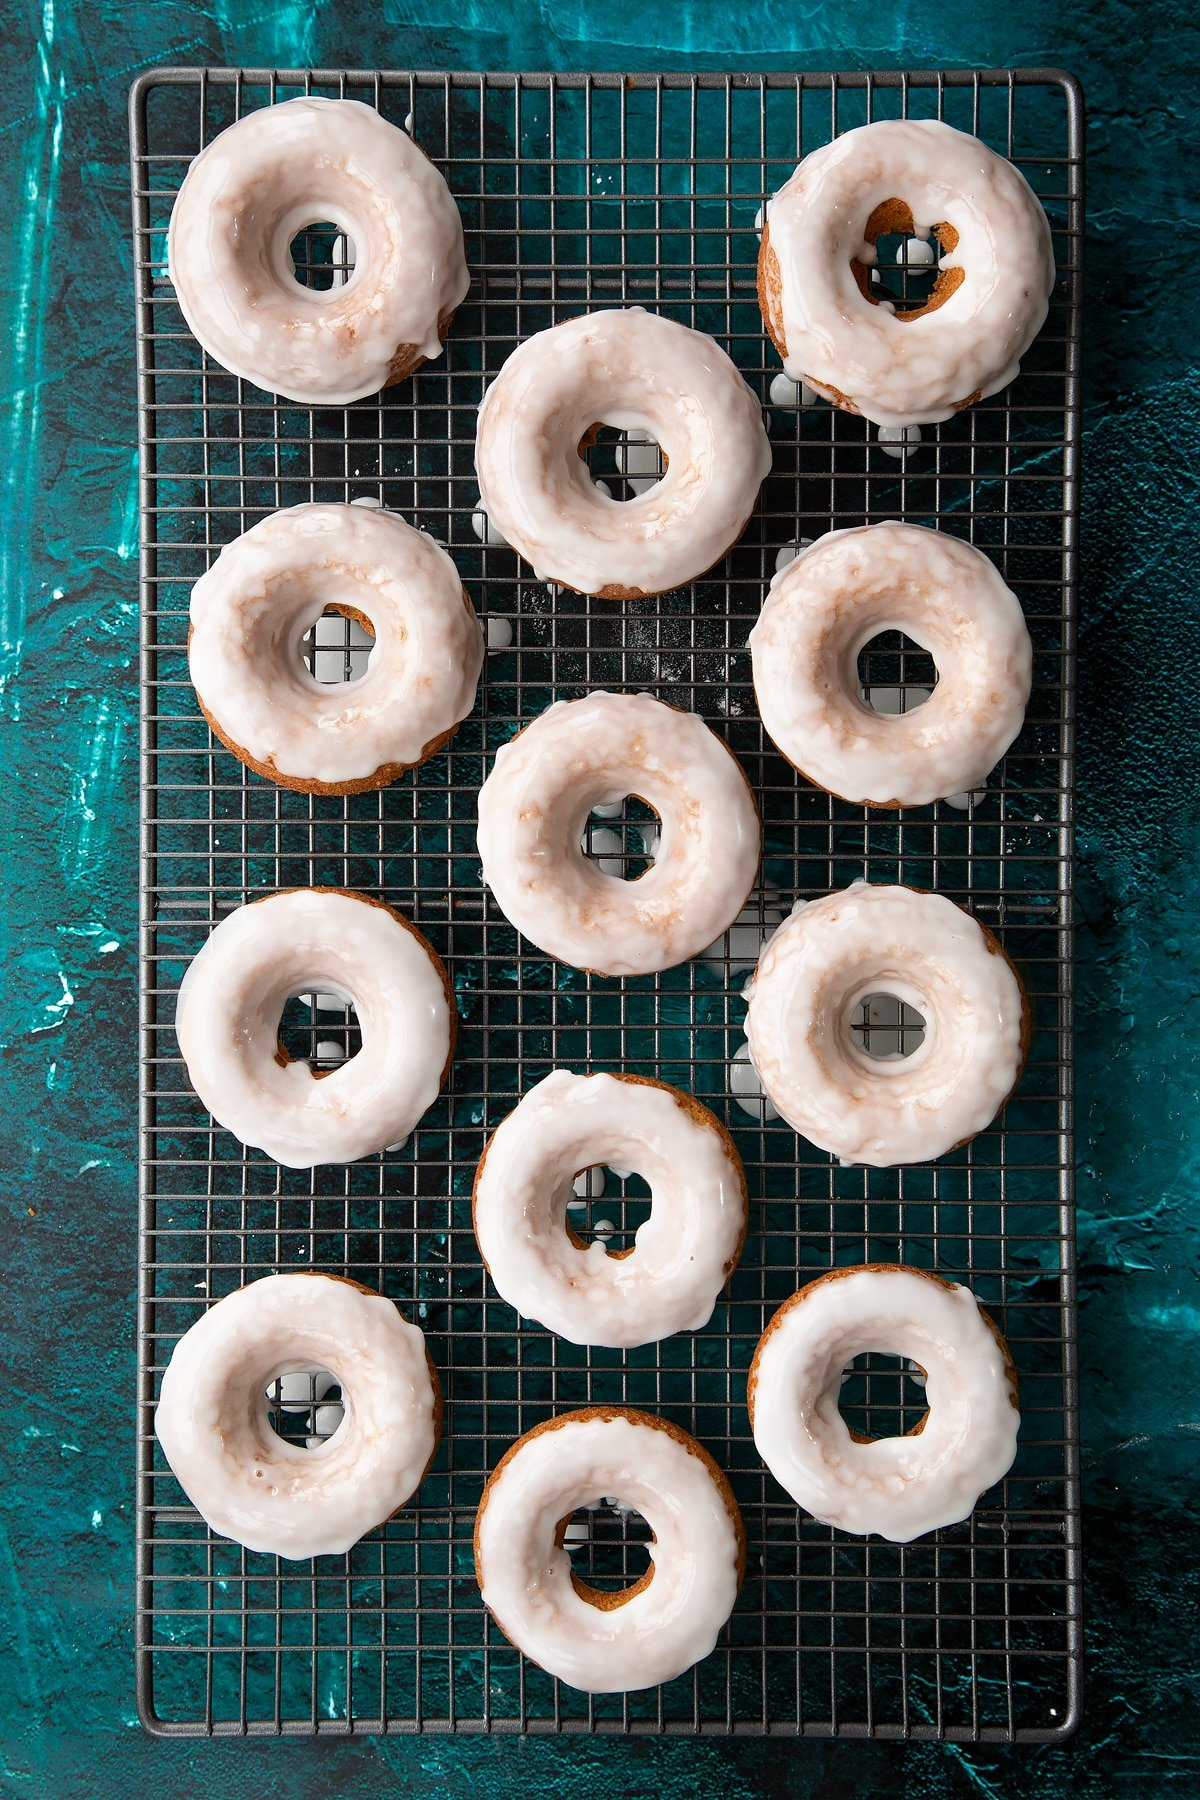 Freshly baked gingerbread donuts on a wire cooling rack. They have been dipped in lemon glaze.